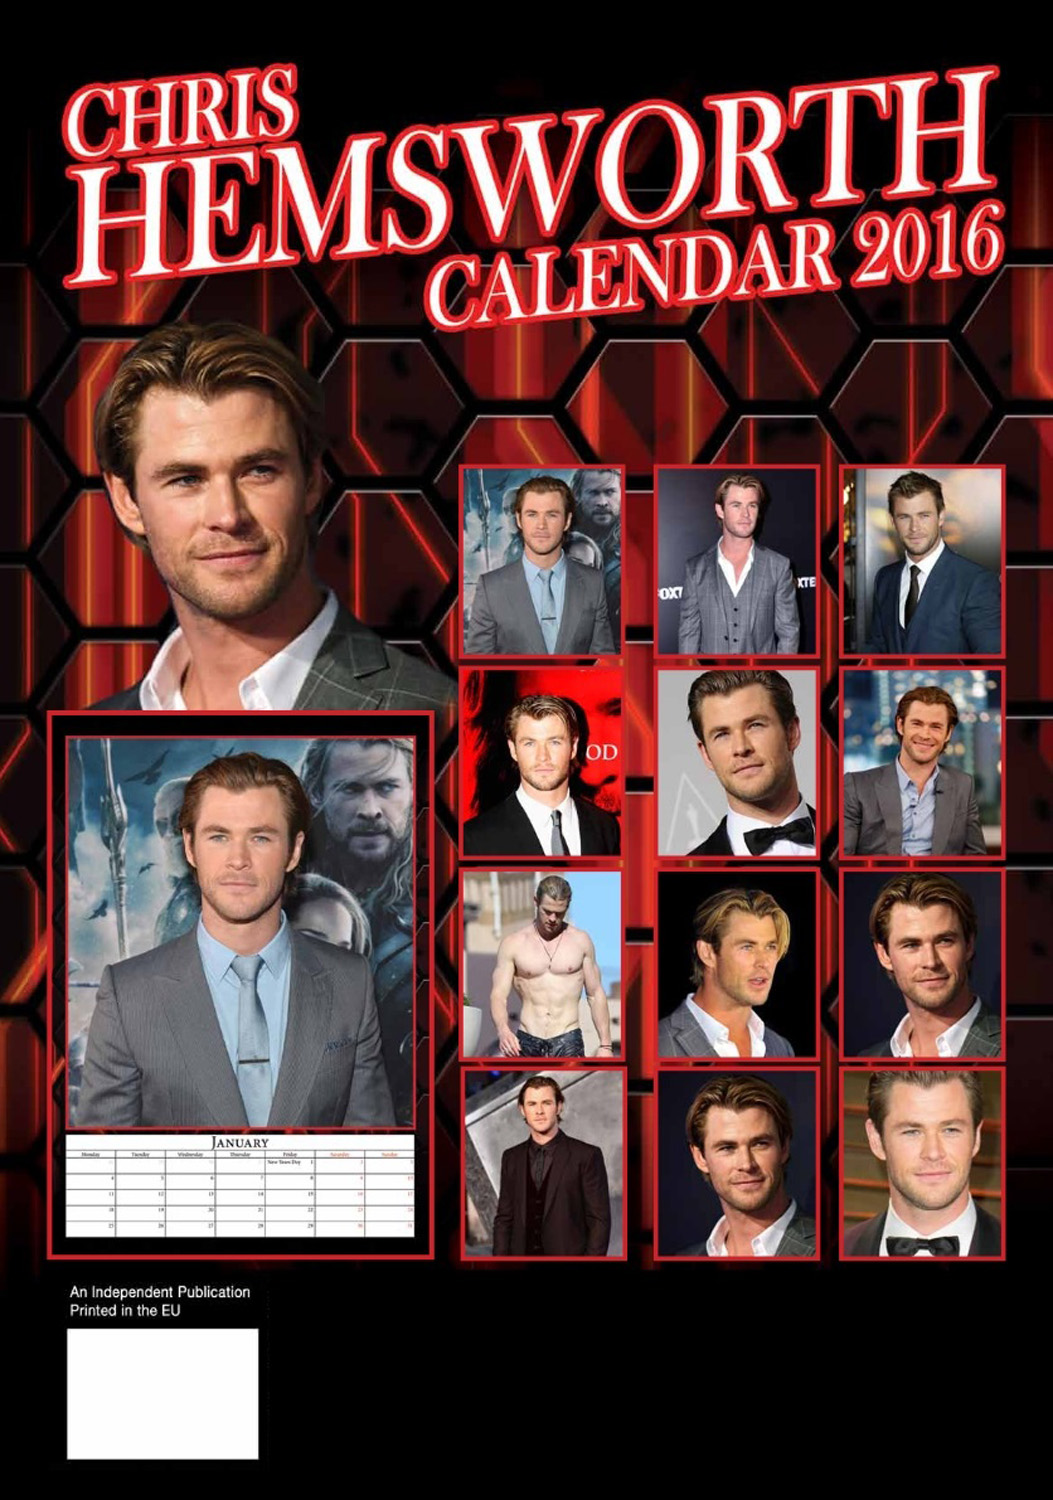 Chris Hemsworth Celebrity Wall Calendar 2016  back 9788898521661